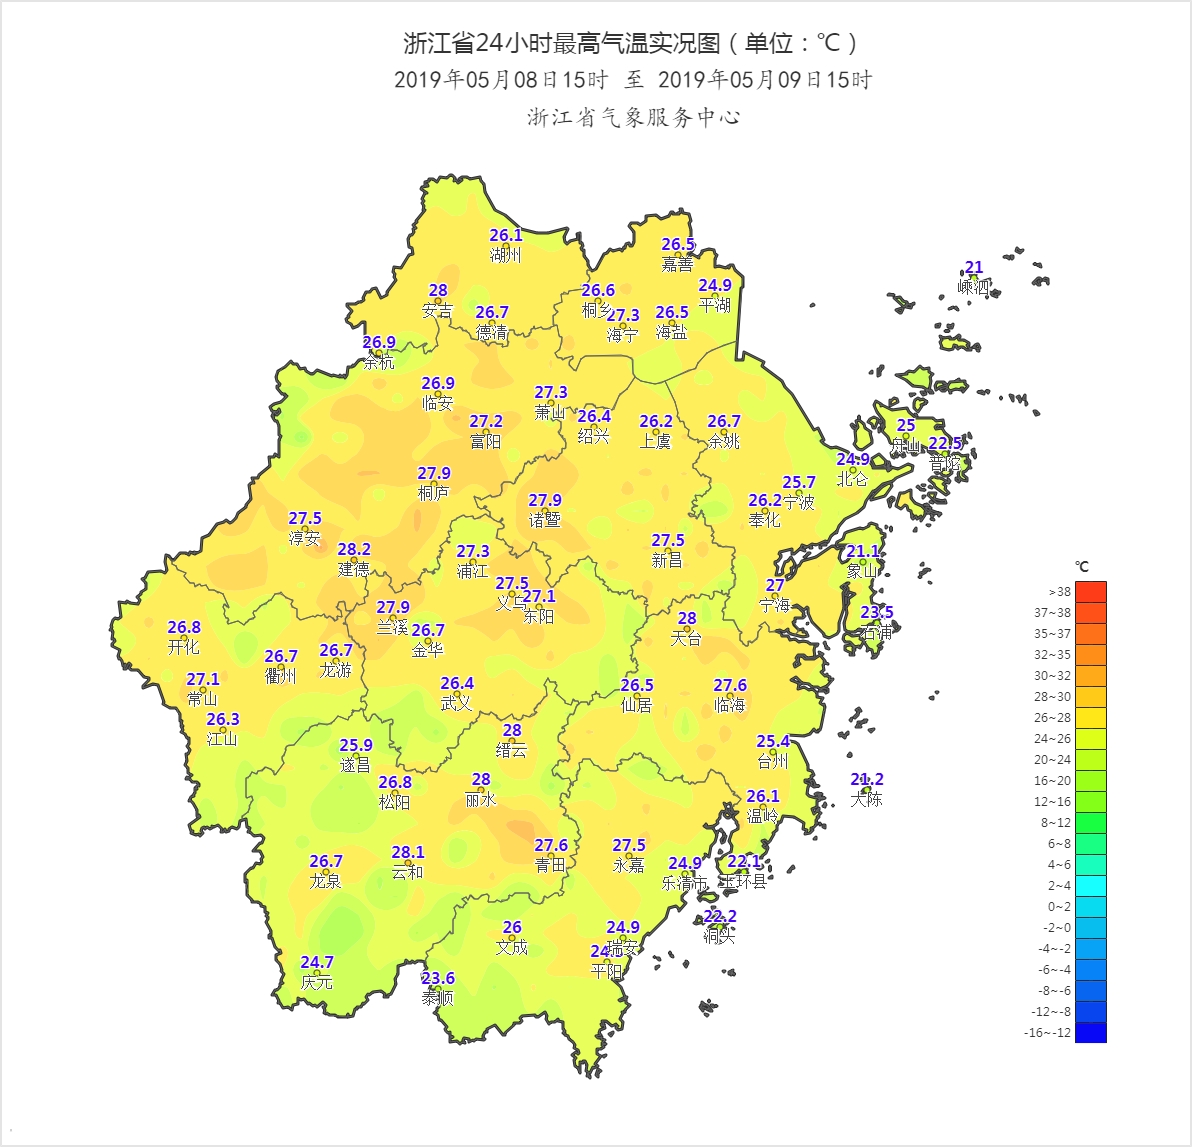 http://i.weather.com.cn/images/zhejiang1/tqyw/2019/05/09/1557390668422064409.png